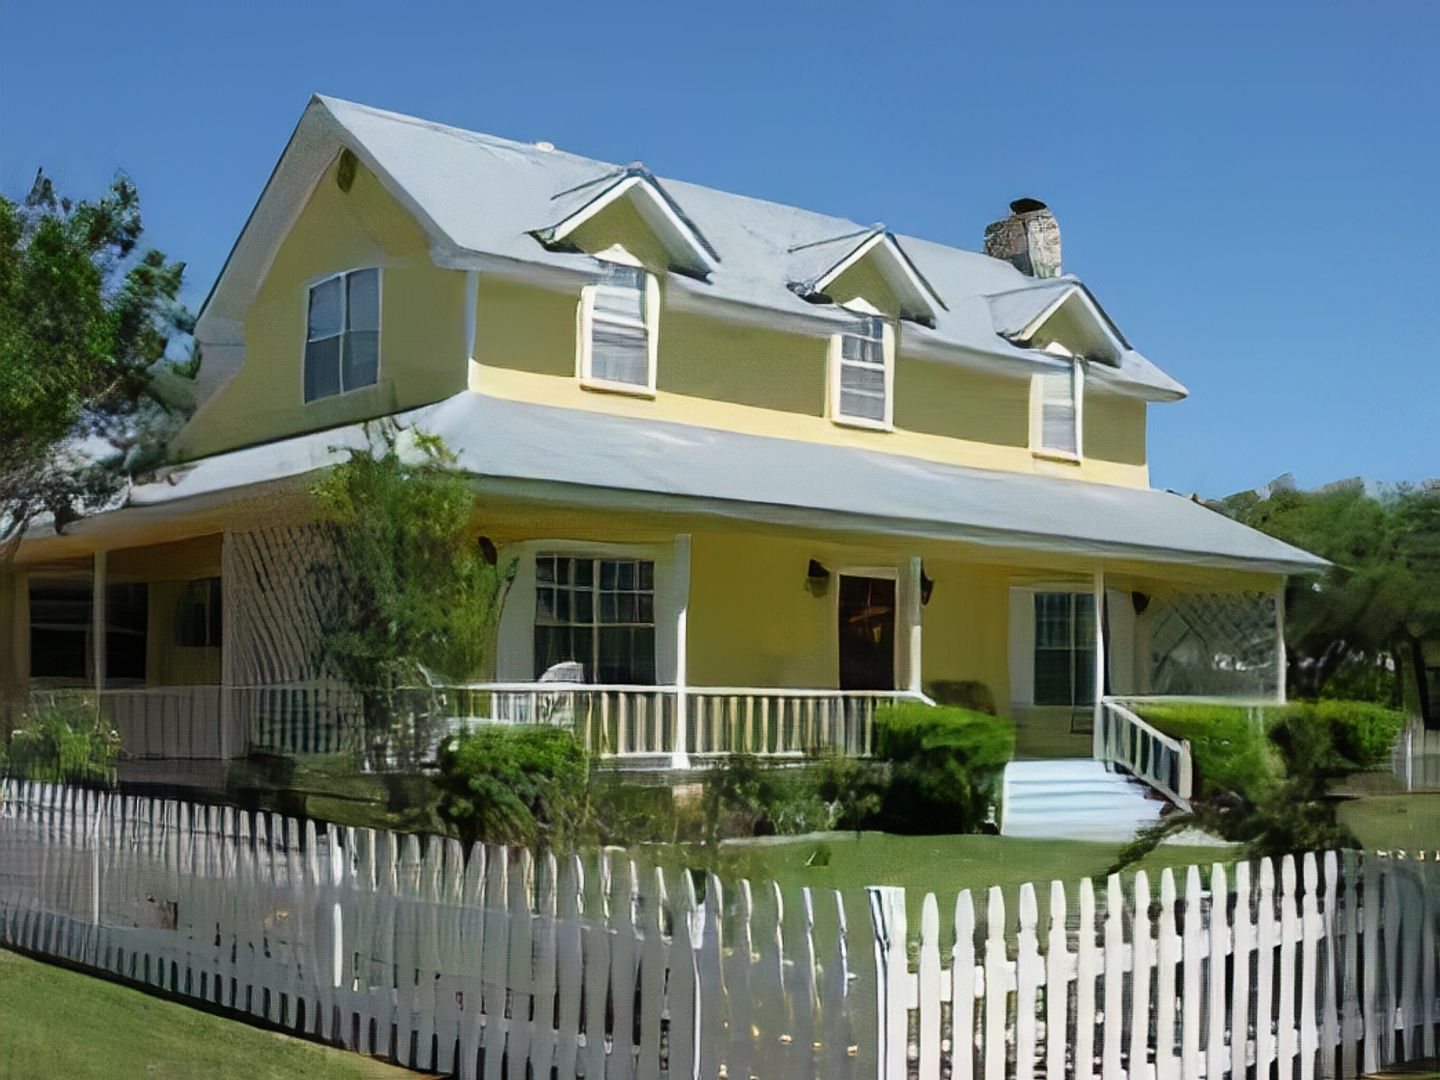 A house with a lawn in front of a building at Yellow House Bed and Breakfast.